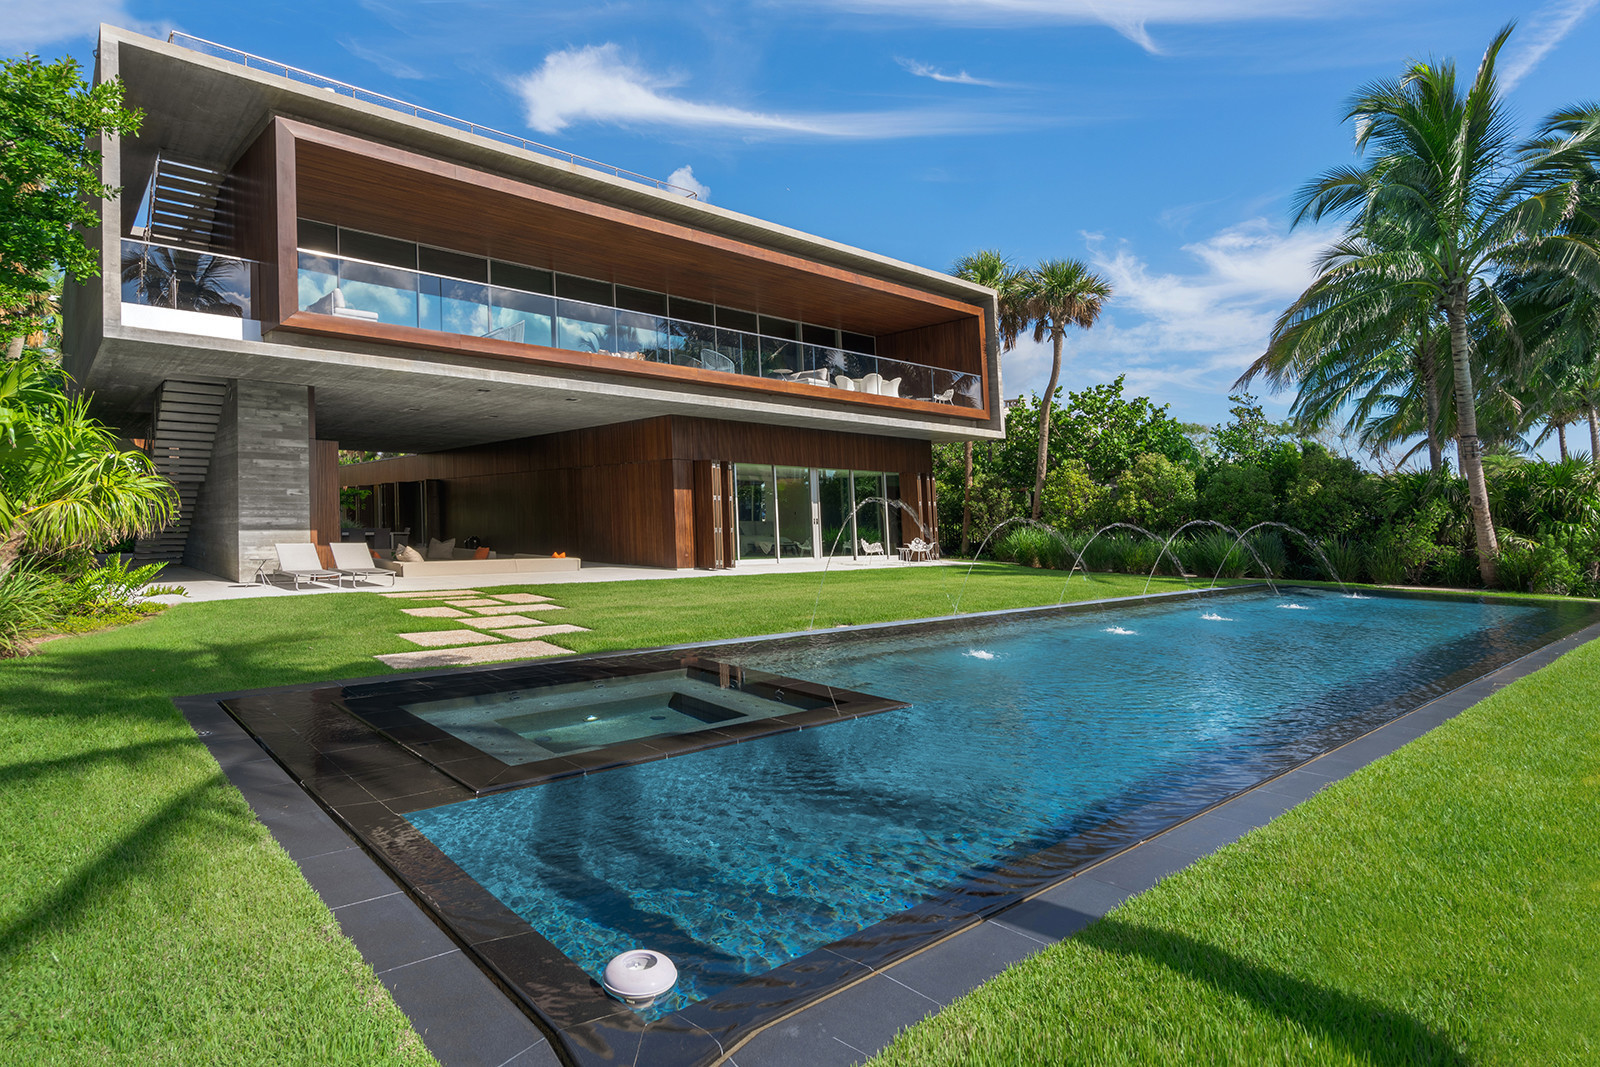 Miami Beach Mansion With Private Lagoon Basketball Half Court Winding Bridge Goes For Almost 26 Million Sun Sentinel